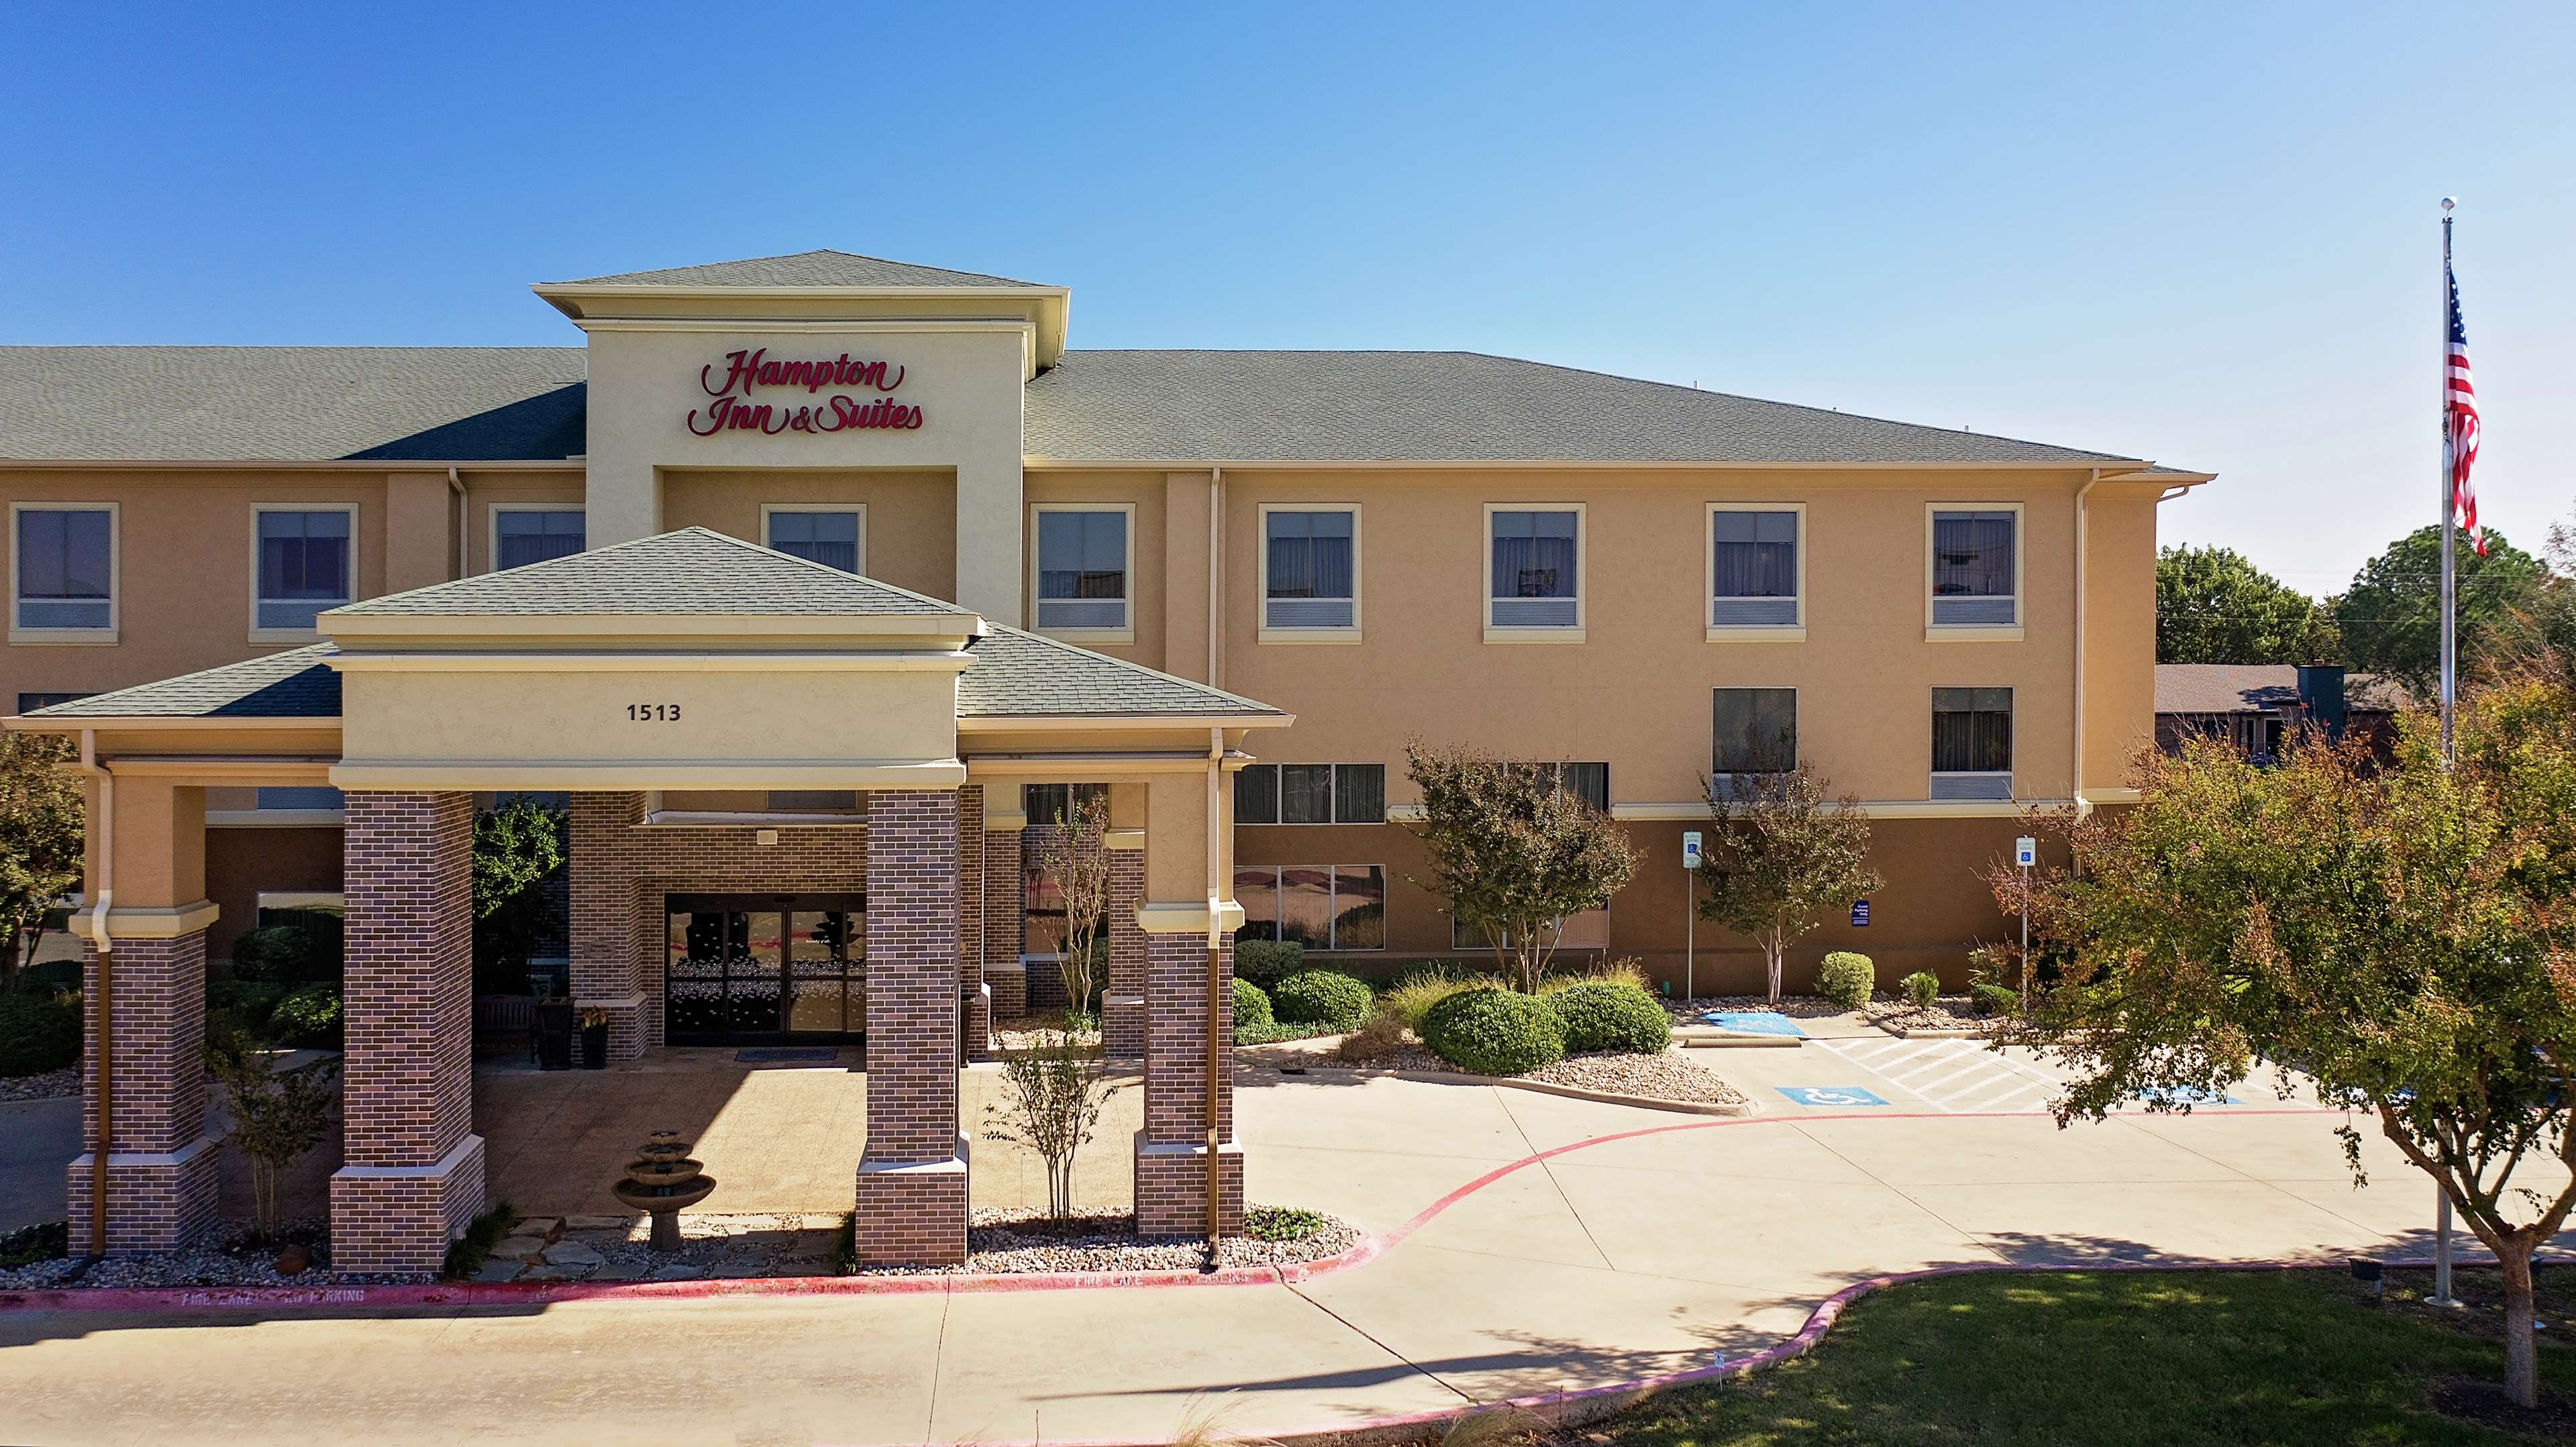 Hampton Inn & Suites Denton